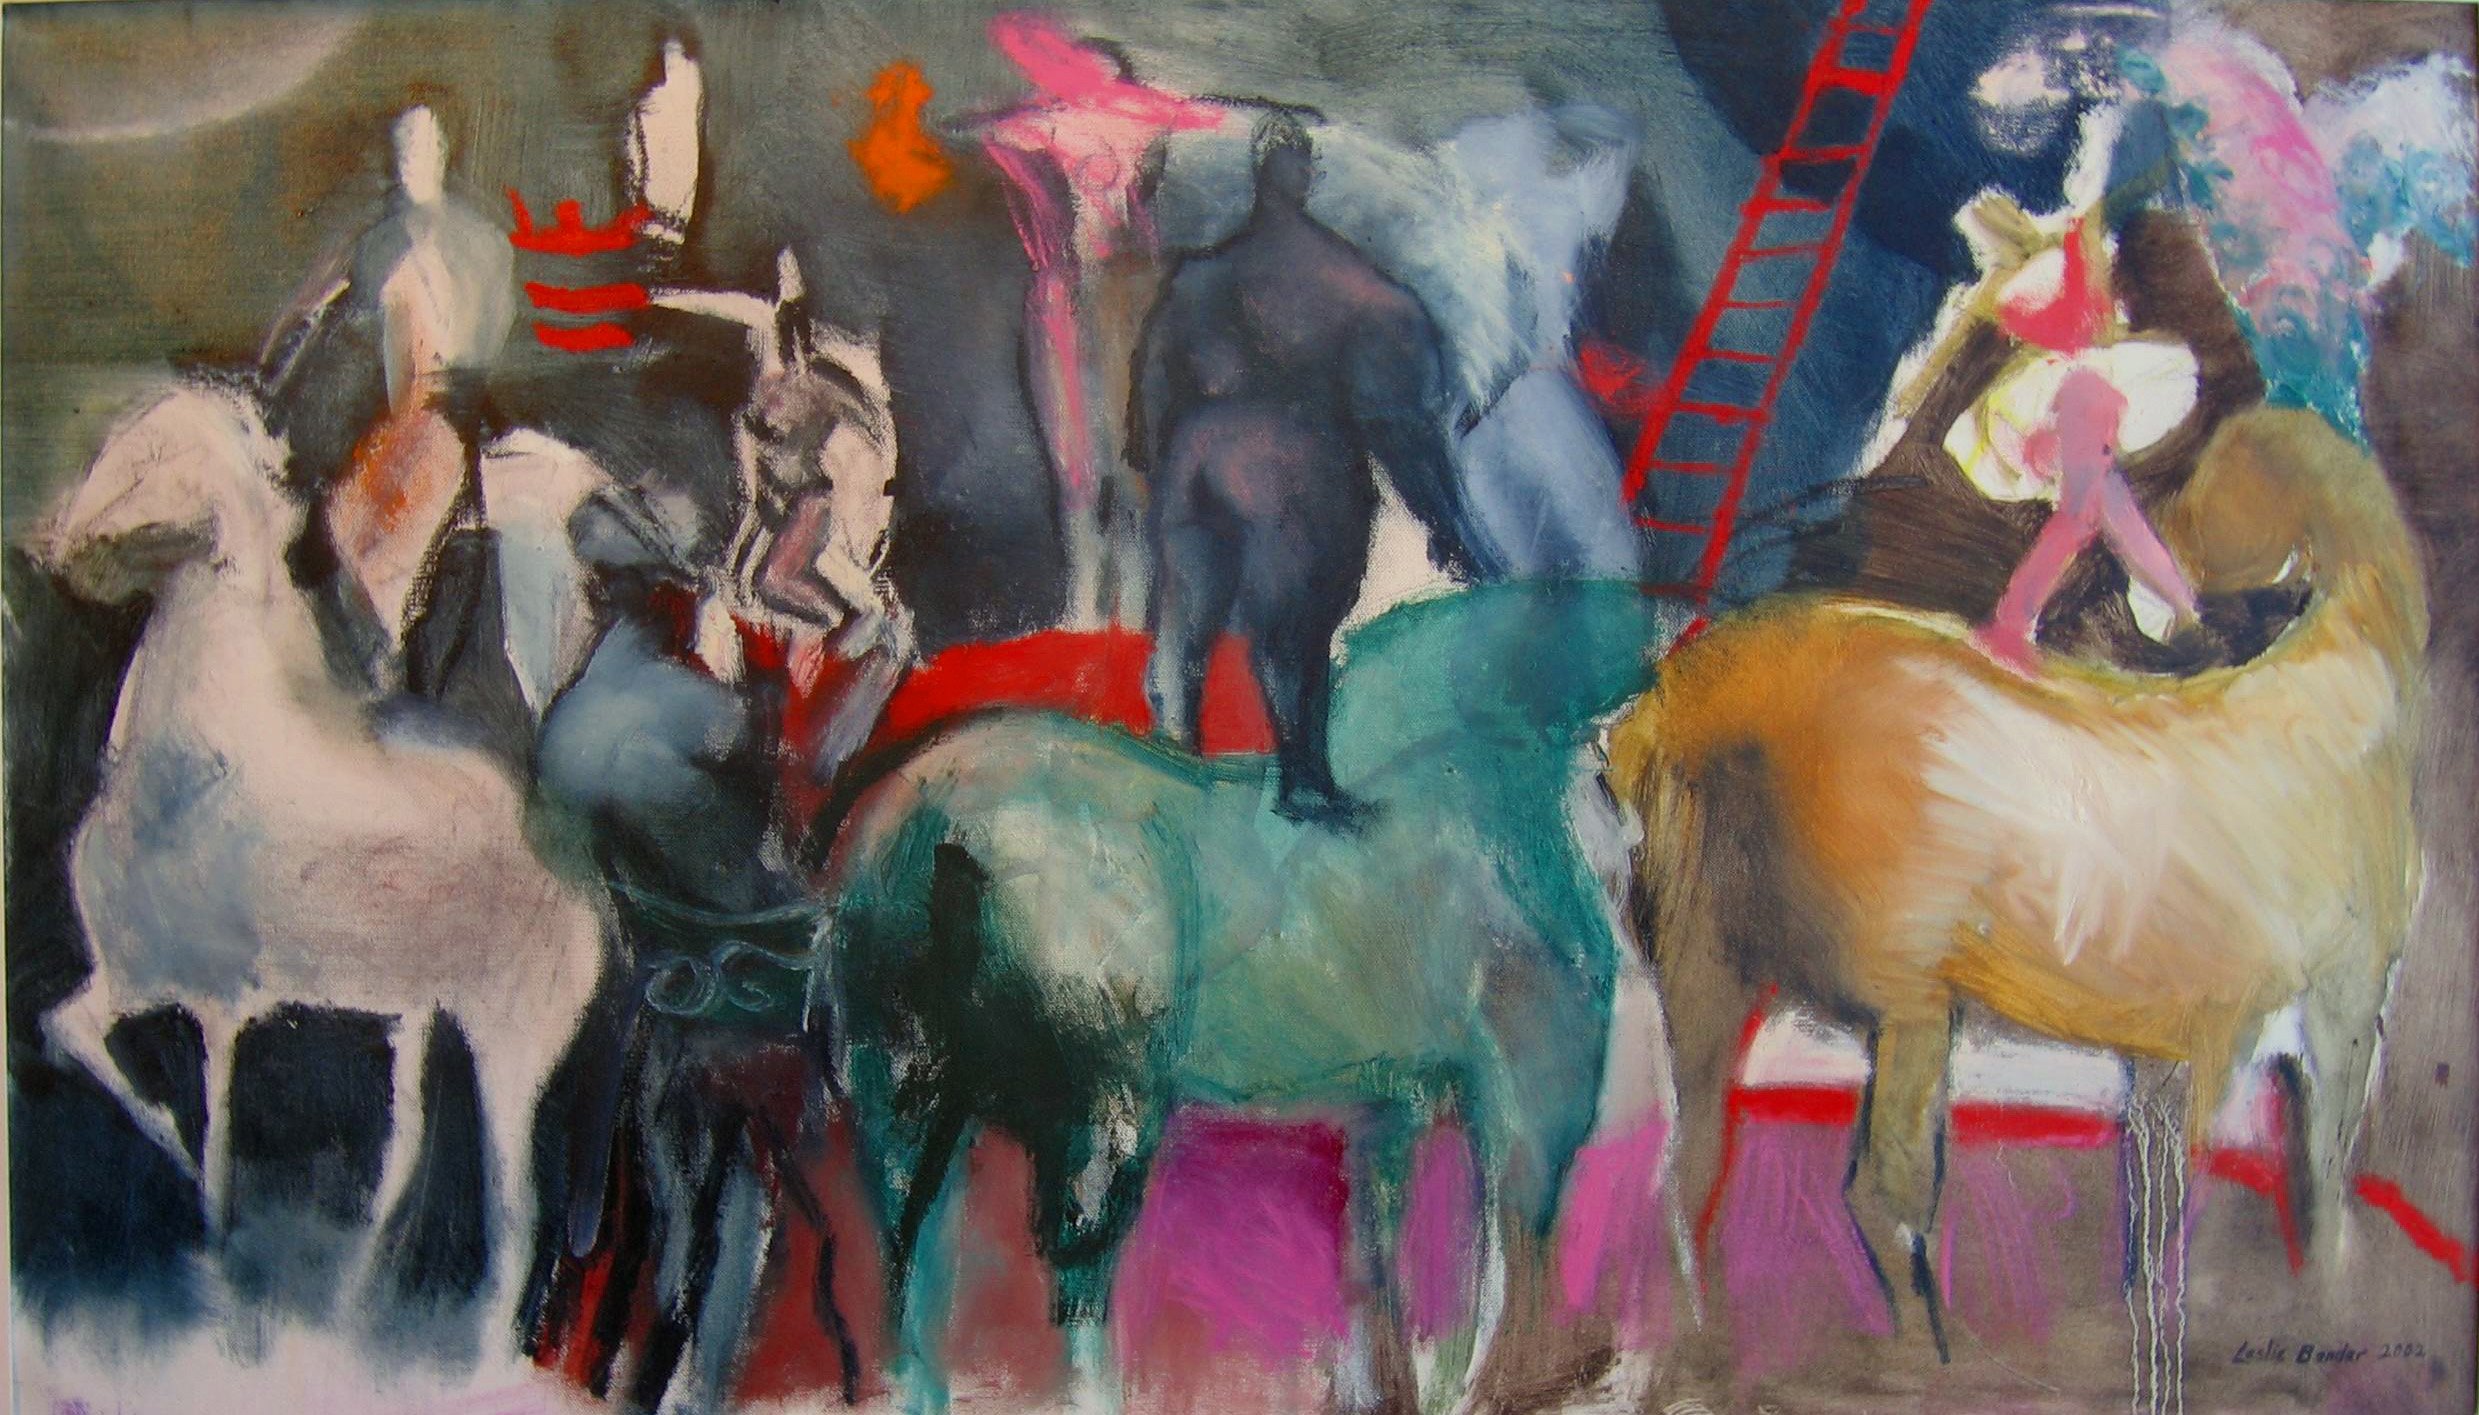 Leslie Bender- Black Circus, oil on unstretched canvas. Photo courtesy ASFA